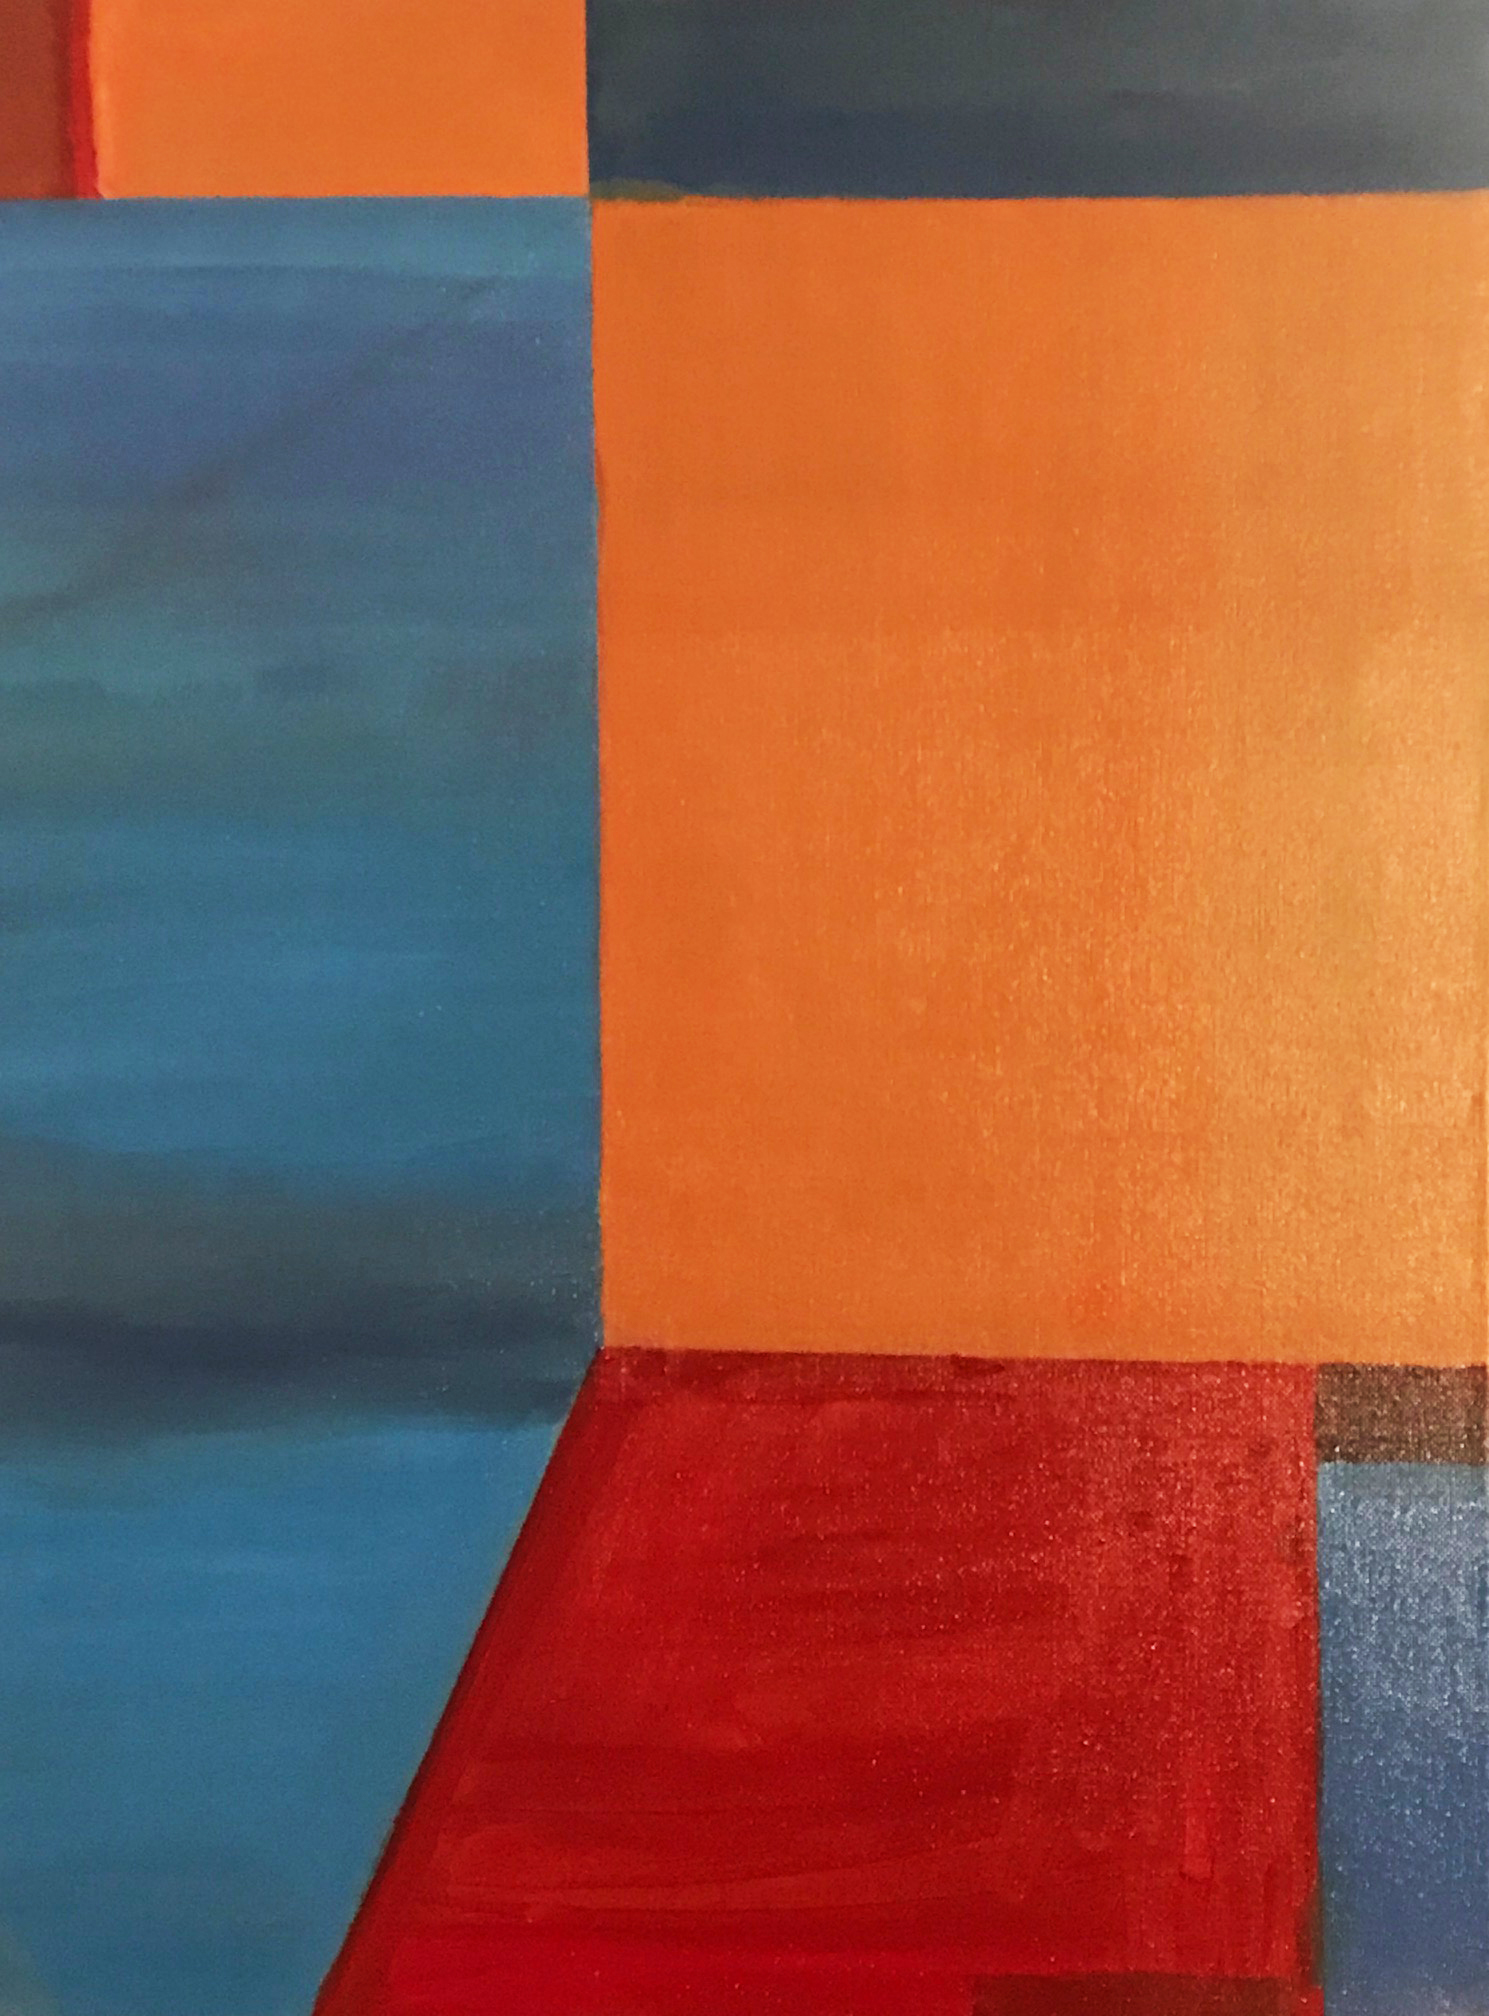 Untitled (Red and Blue)